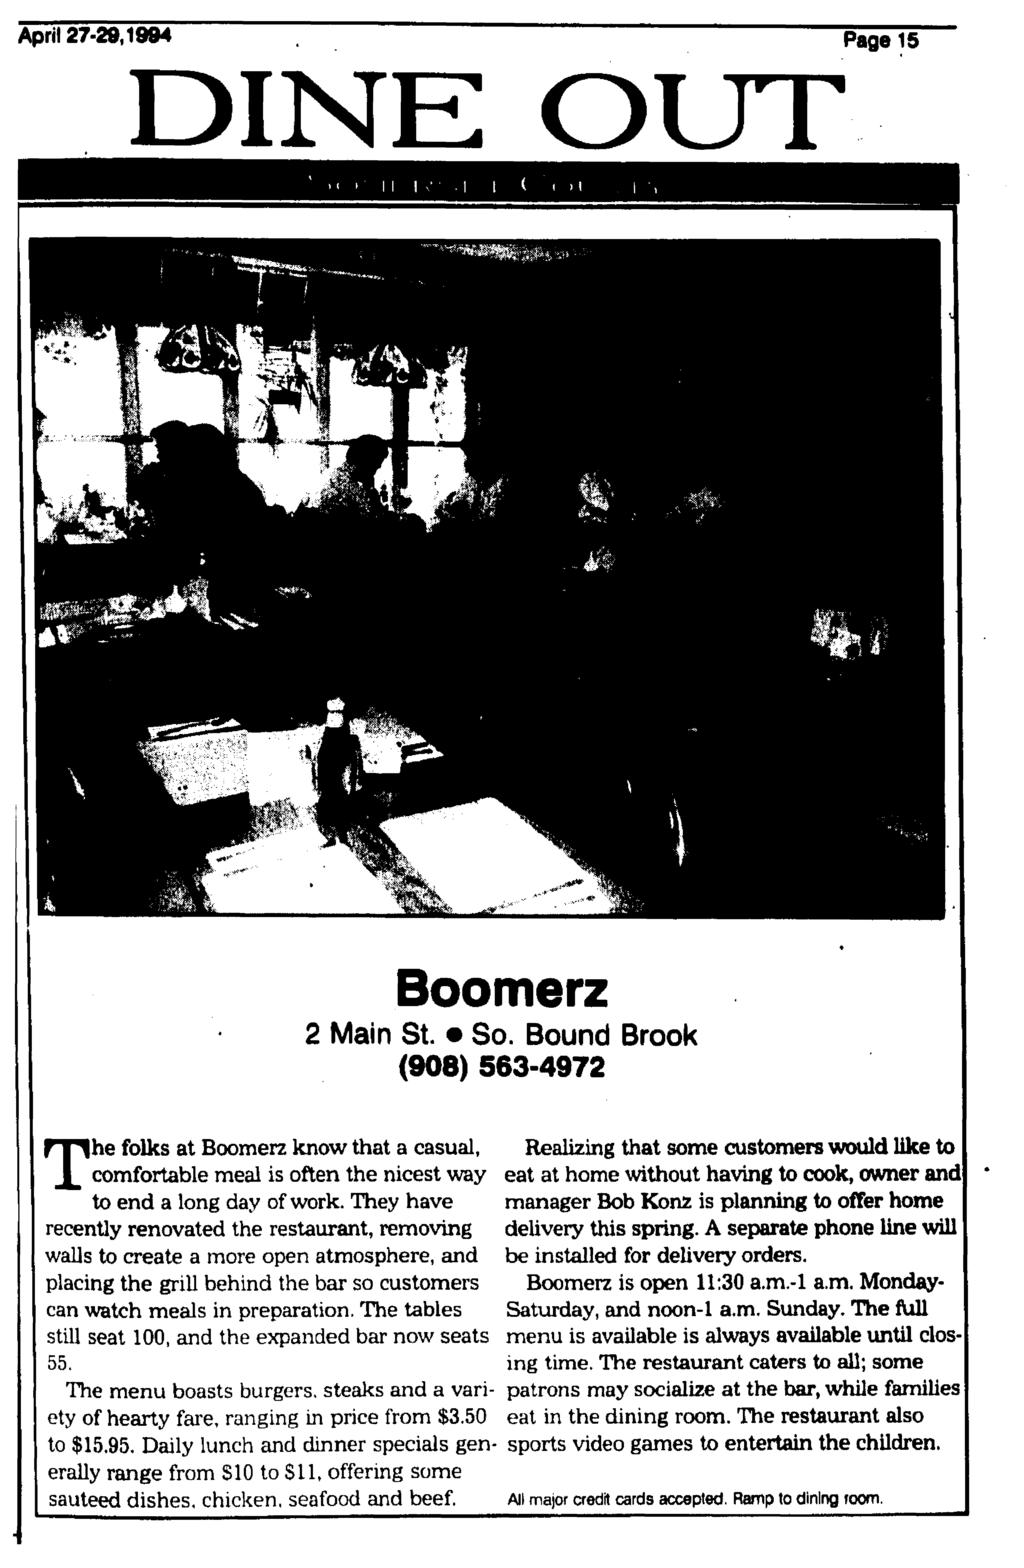 April 27-29,1984 Page 15 DINE OUT The folks at Boomerz know that a casual, comfortable meal is often the nicest way to end a long day of work.